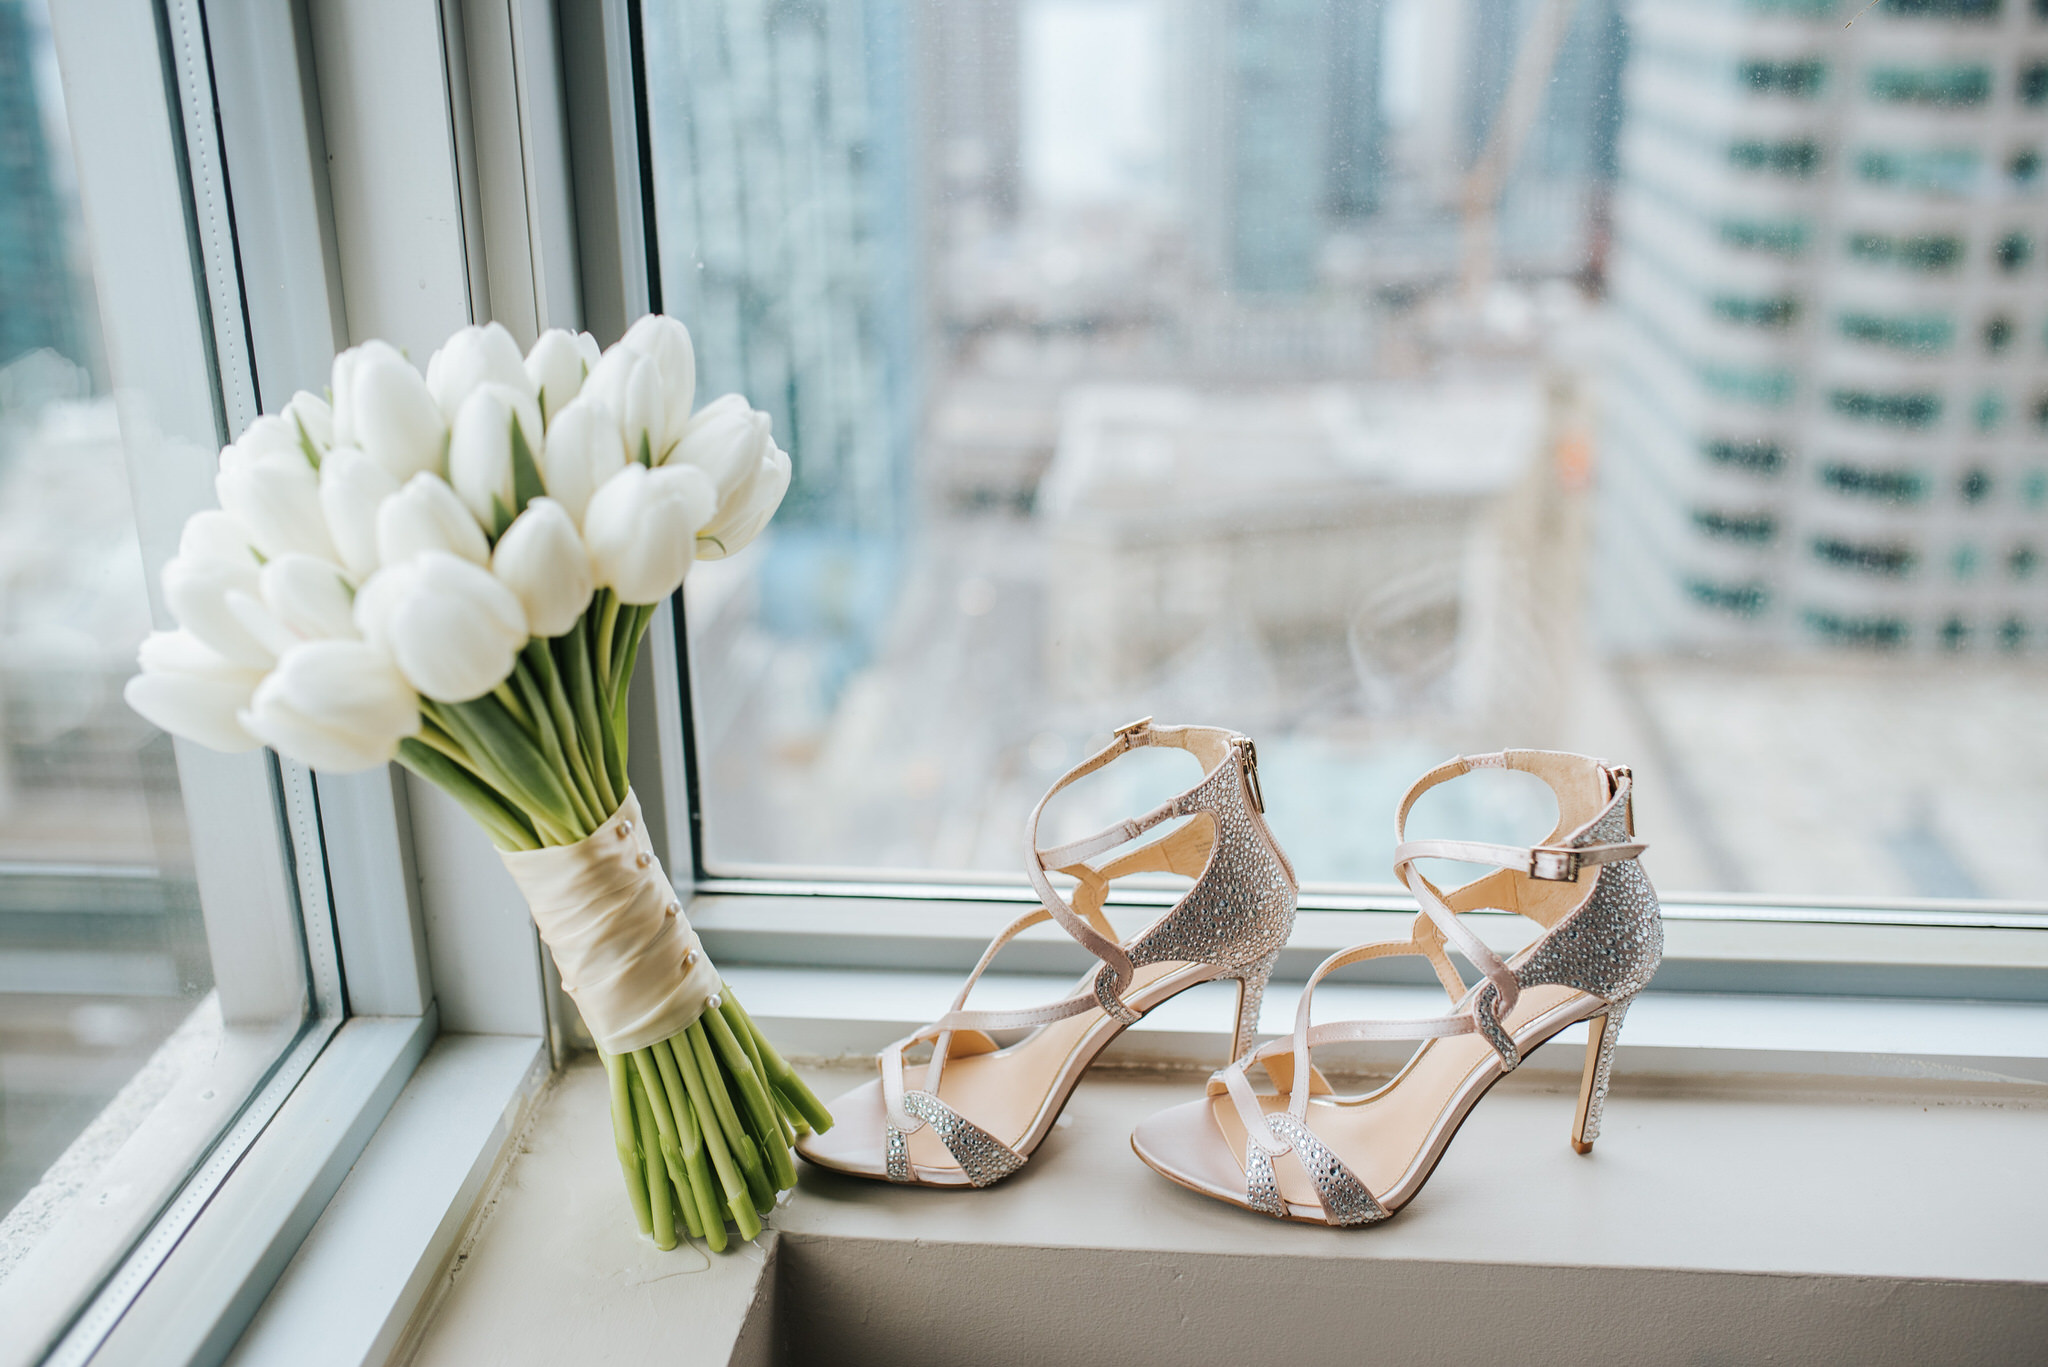 One King Toronto New Years Eve Wedding - shoes and bouqet